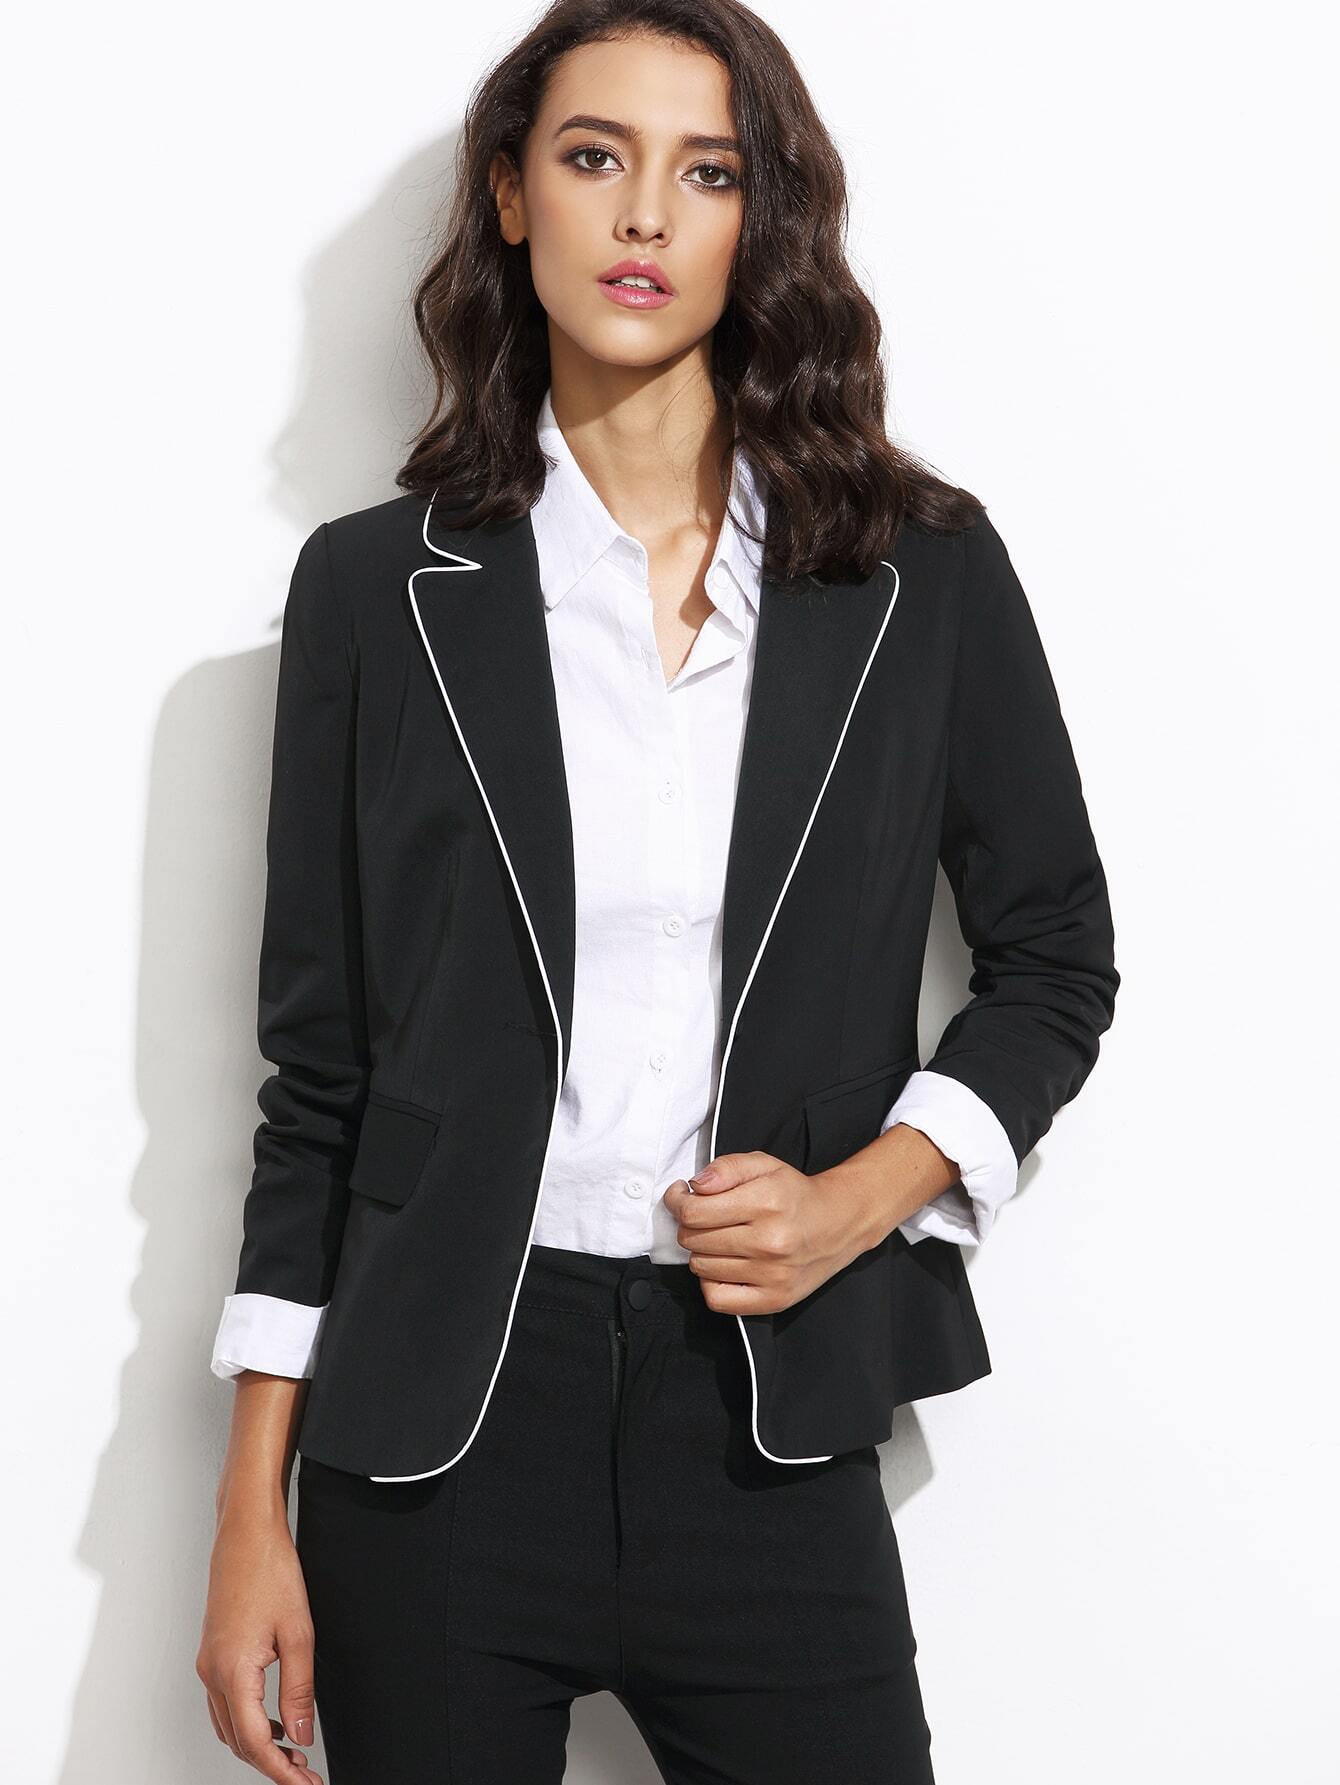 Black Contrast Piping One Button Blazer With Flap PocketBlack Contrast Piping One Button Blazer With Flap Pocket<br><br>color: Black<br>size: XS